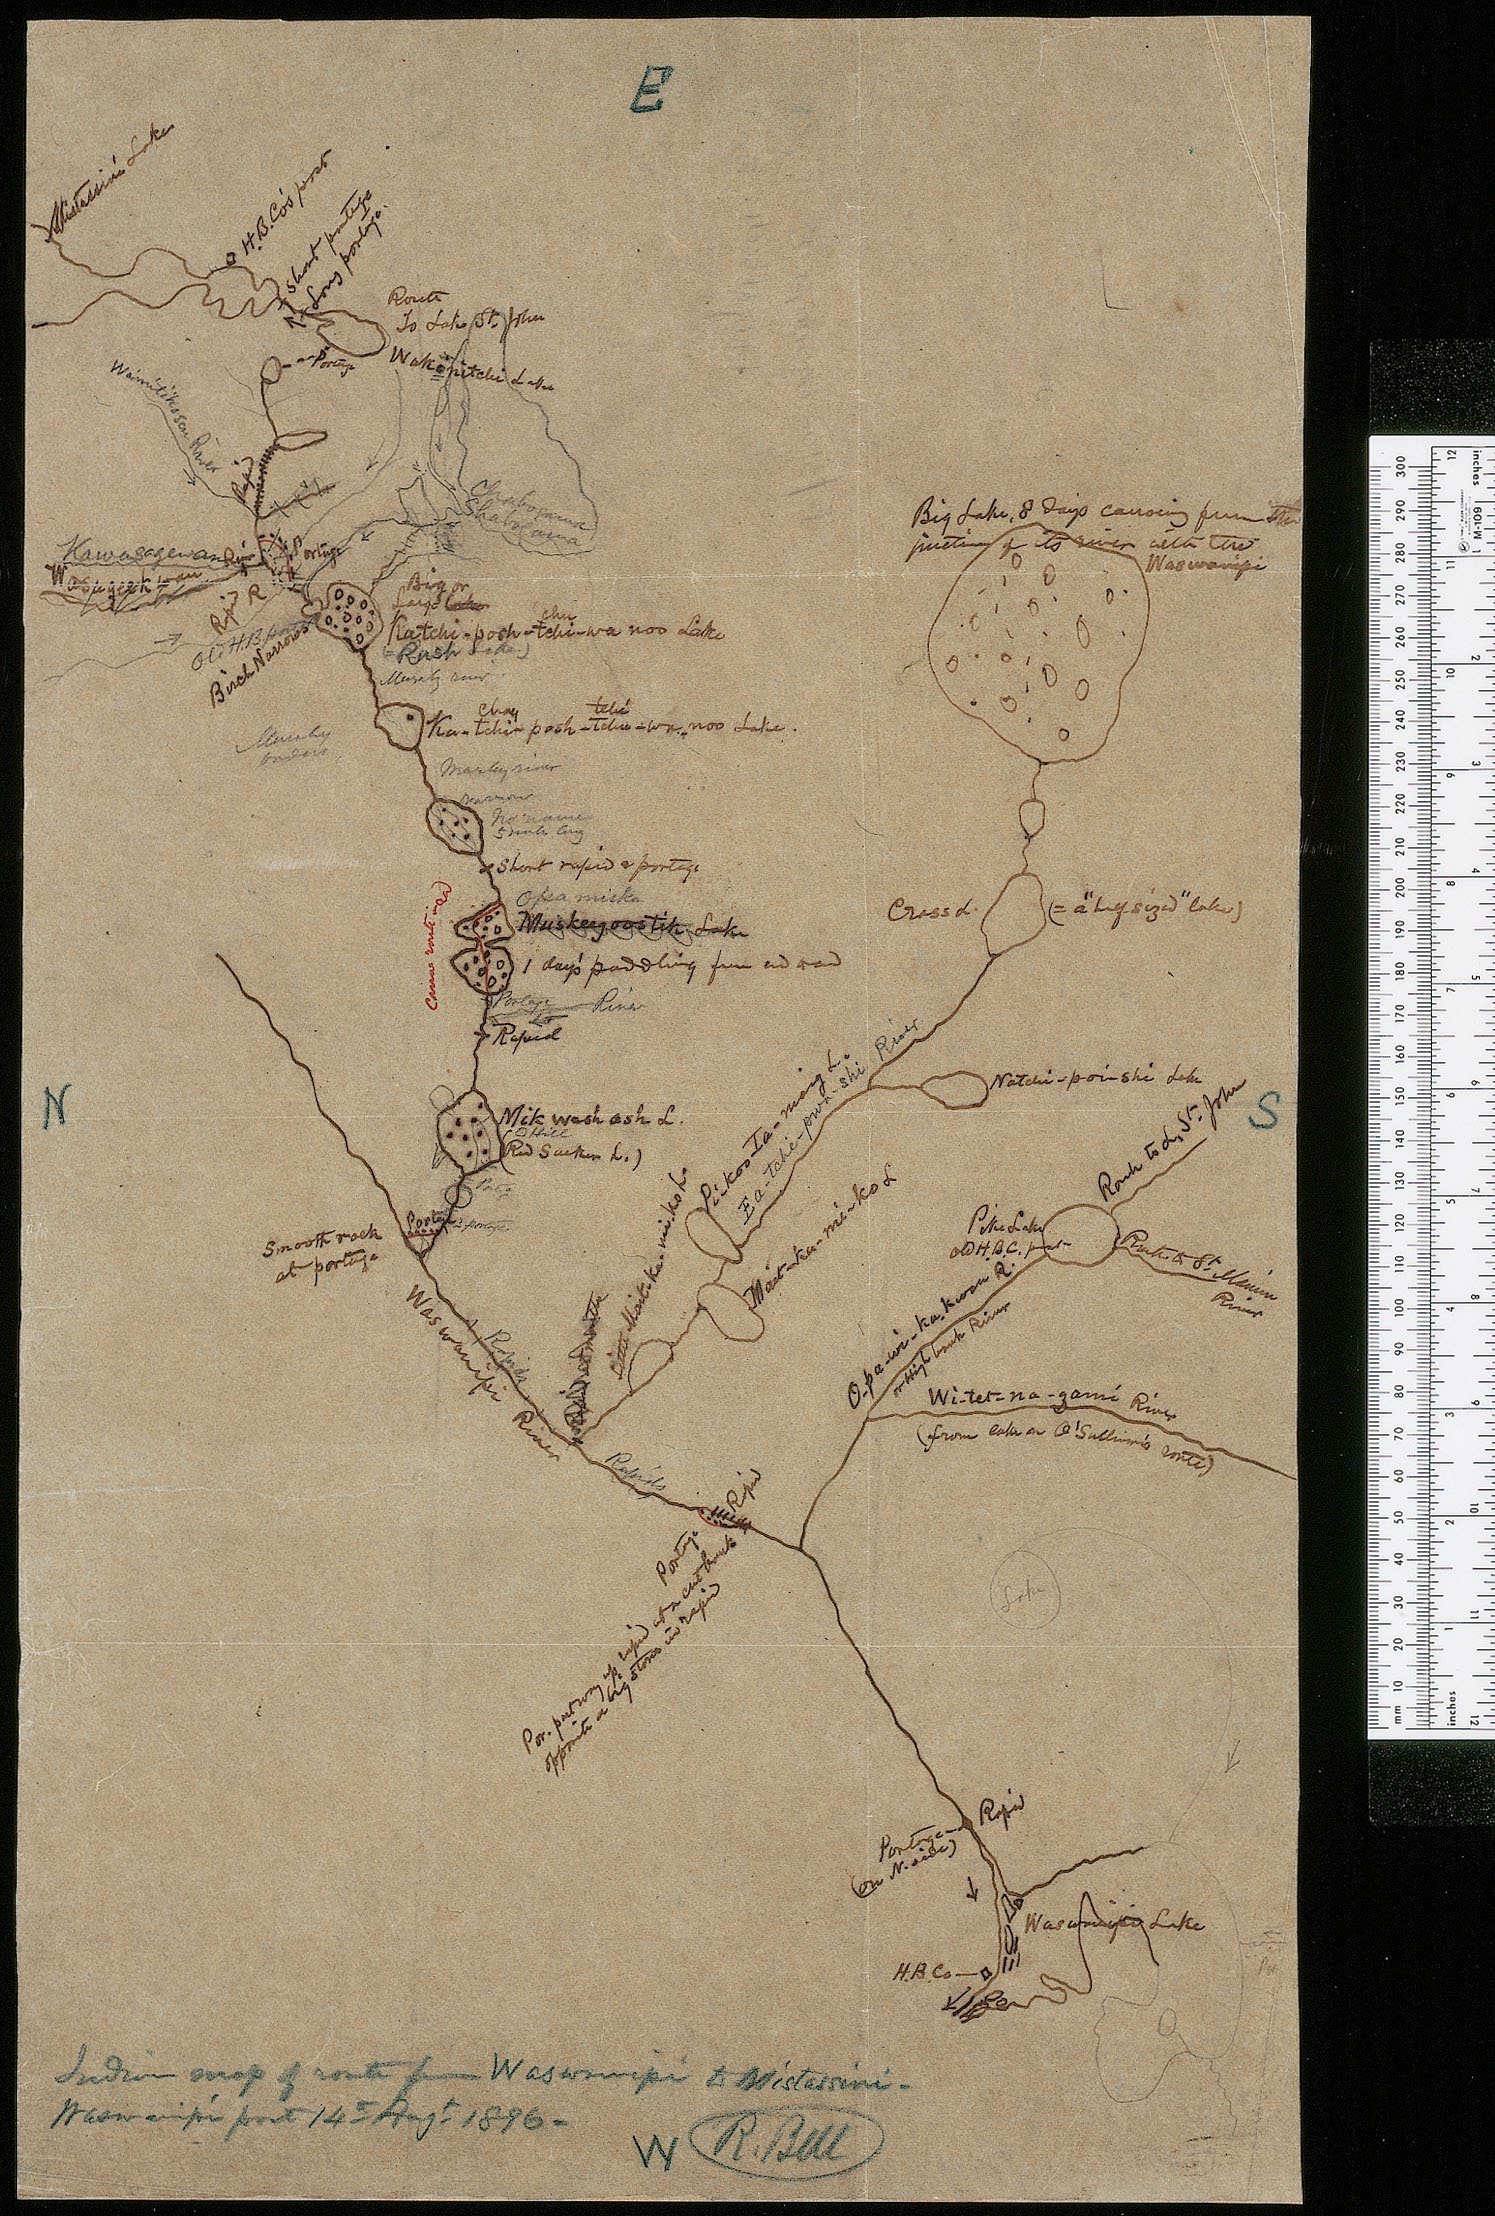 A hand-drawn map showing a river and bodies of water, with writing indicating locations and directions. On the right of the page is a white ruler, shown for scale.